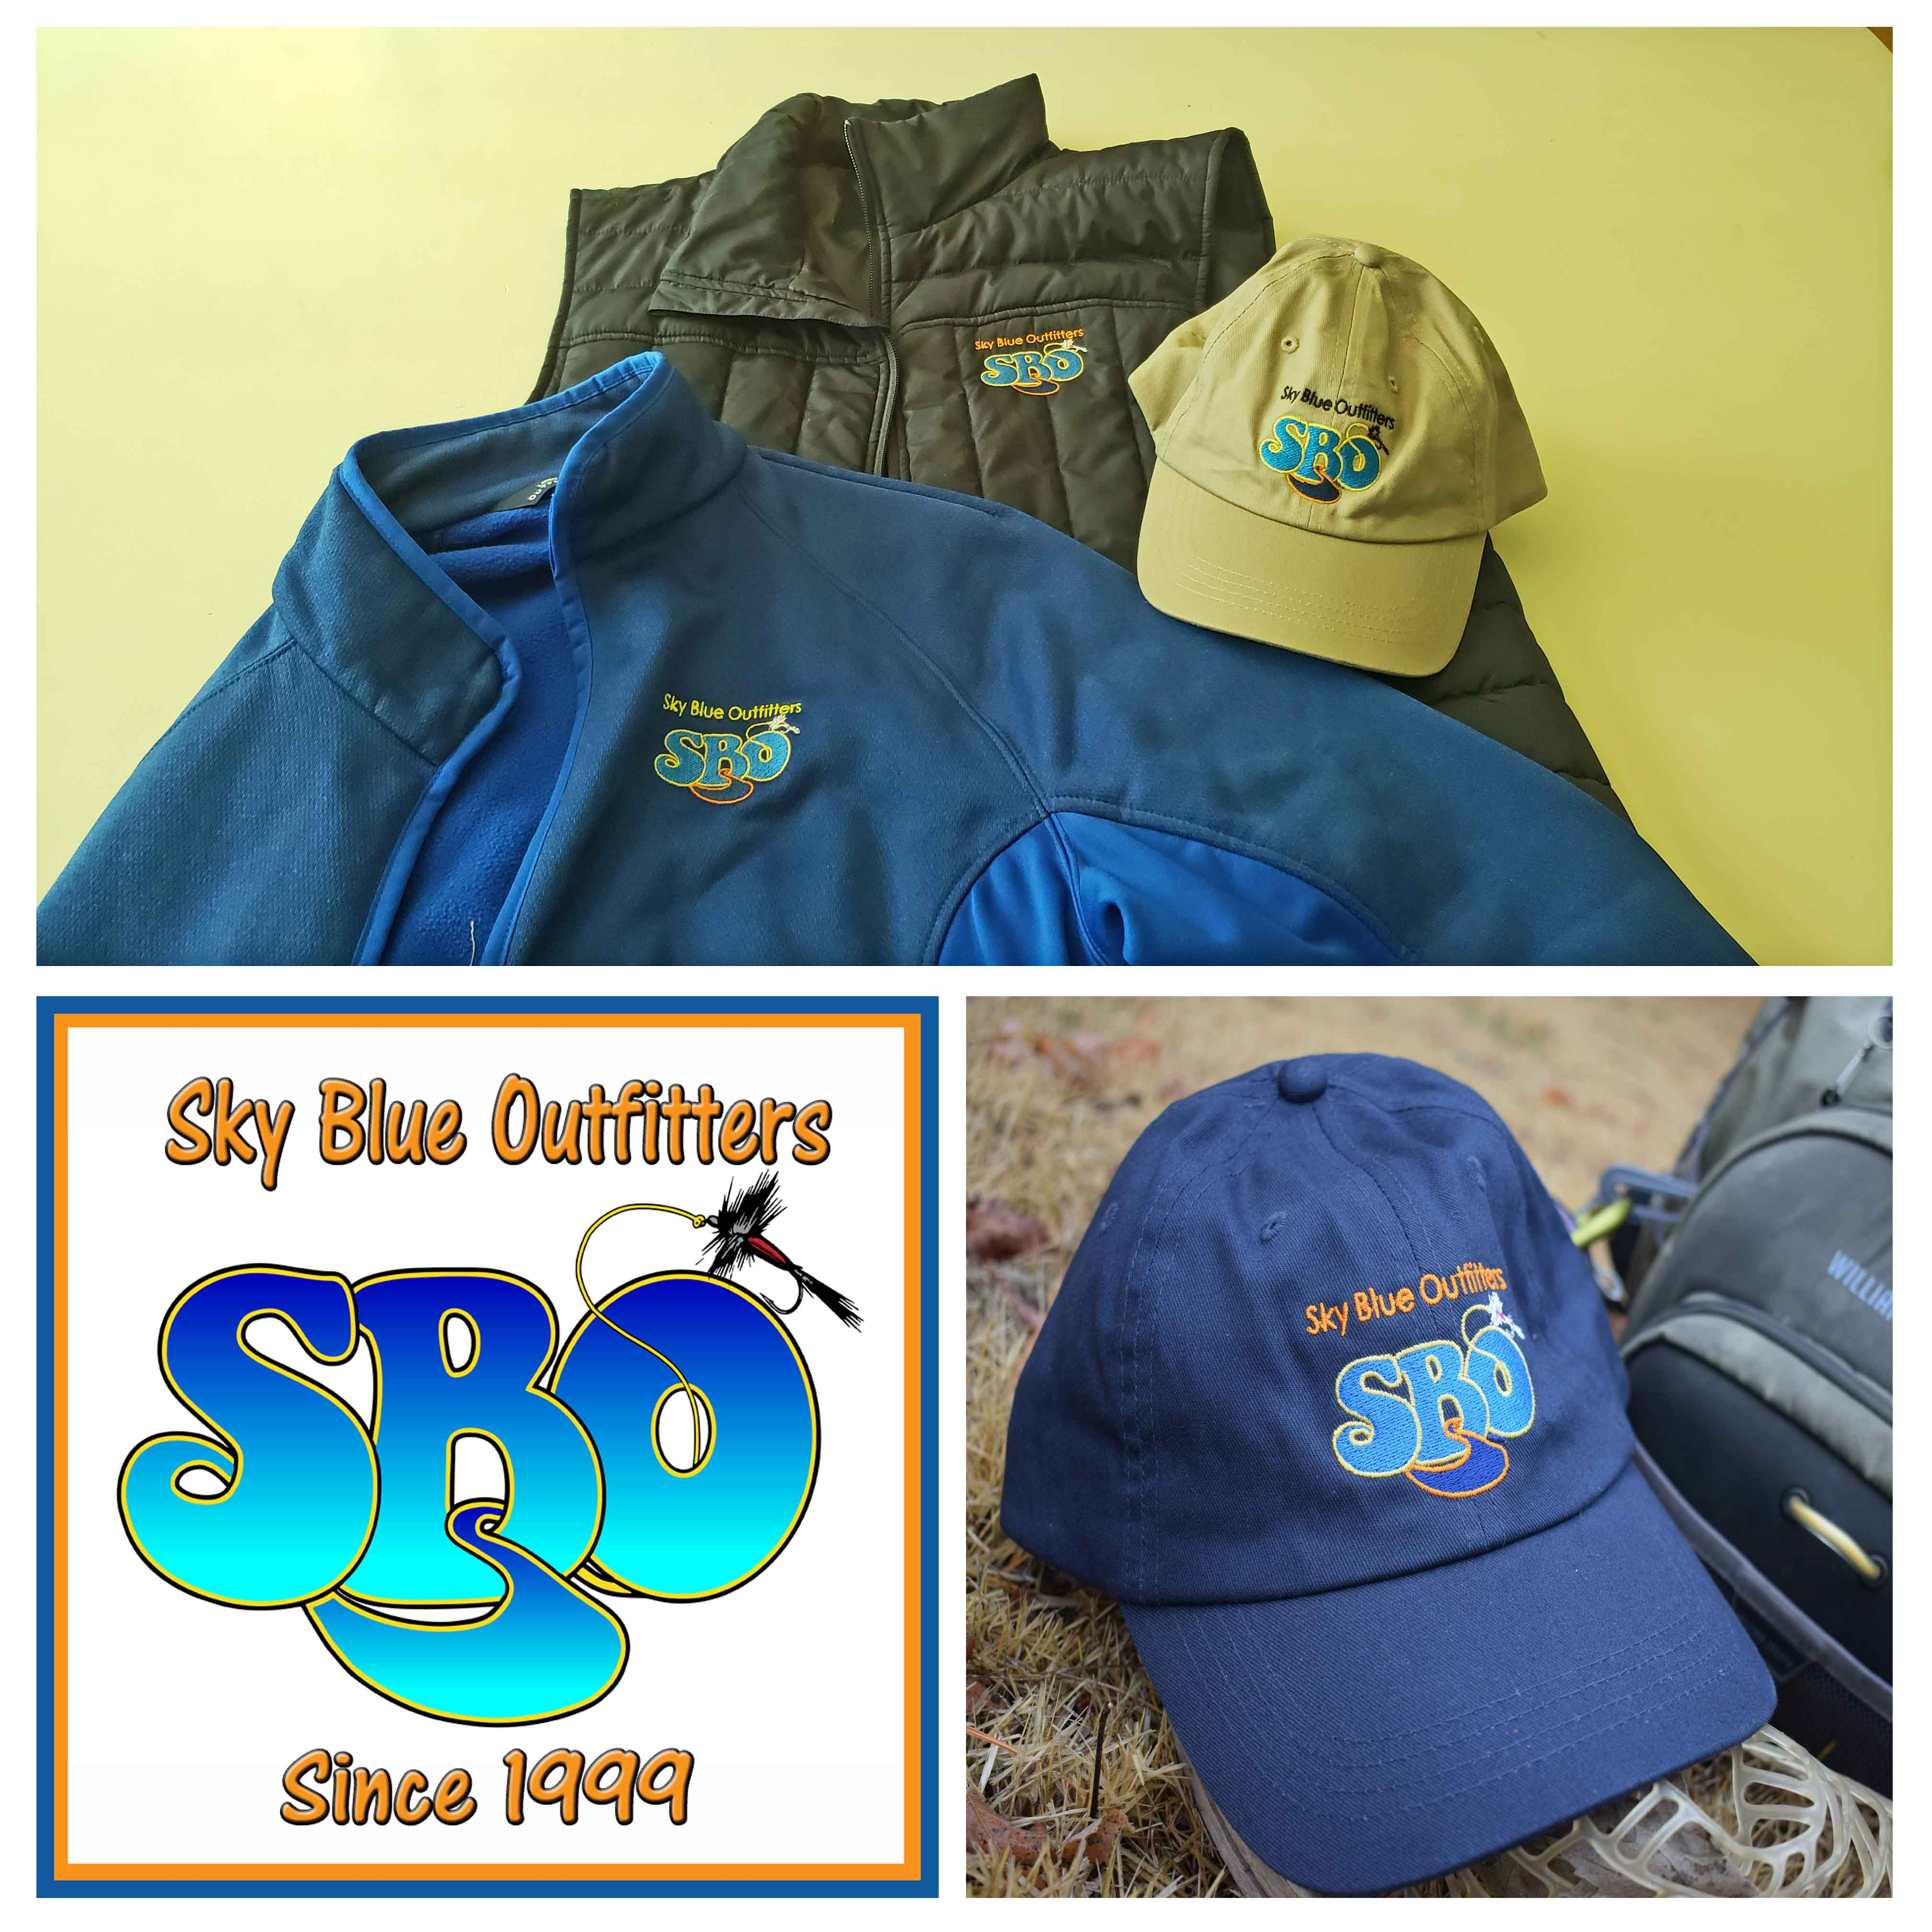 Sky Blue Stickers, Hats, Cloths, Backpacks and Duffel Bags Available